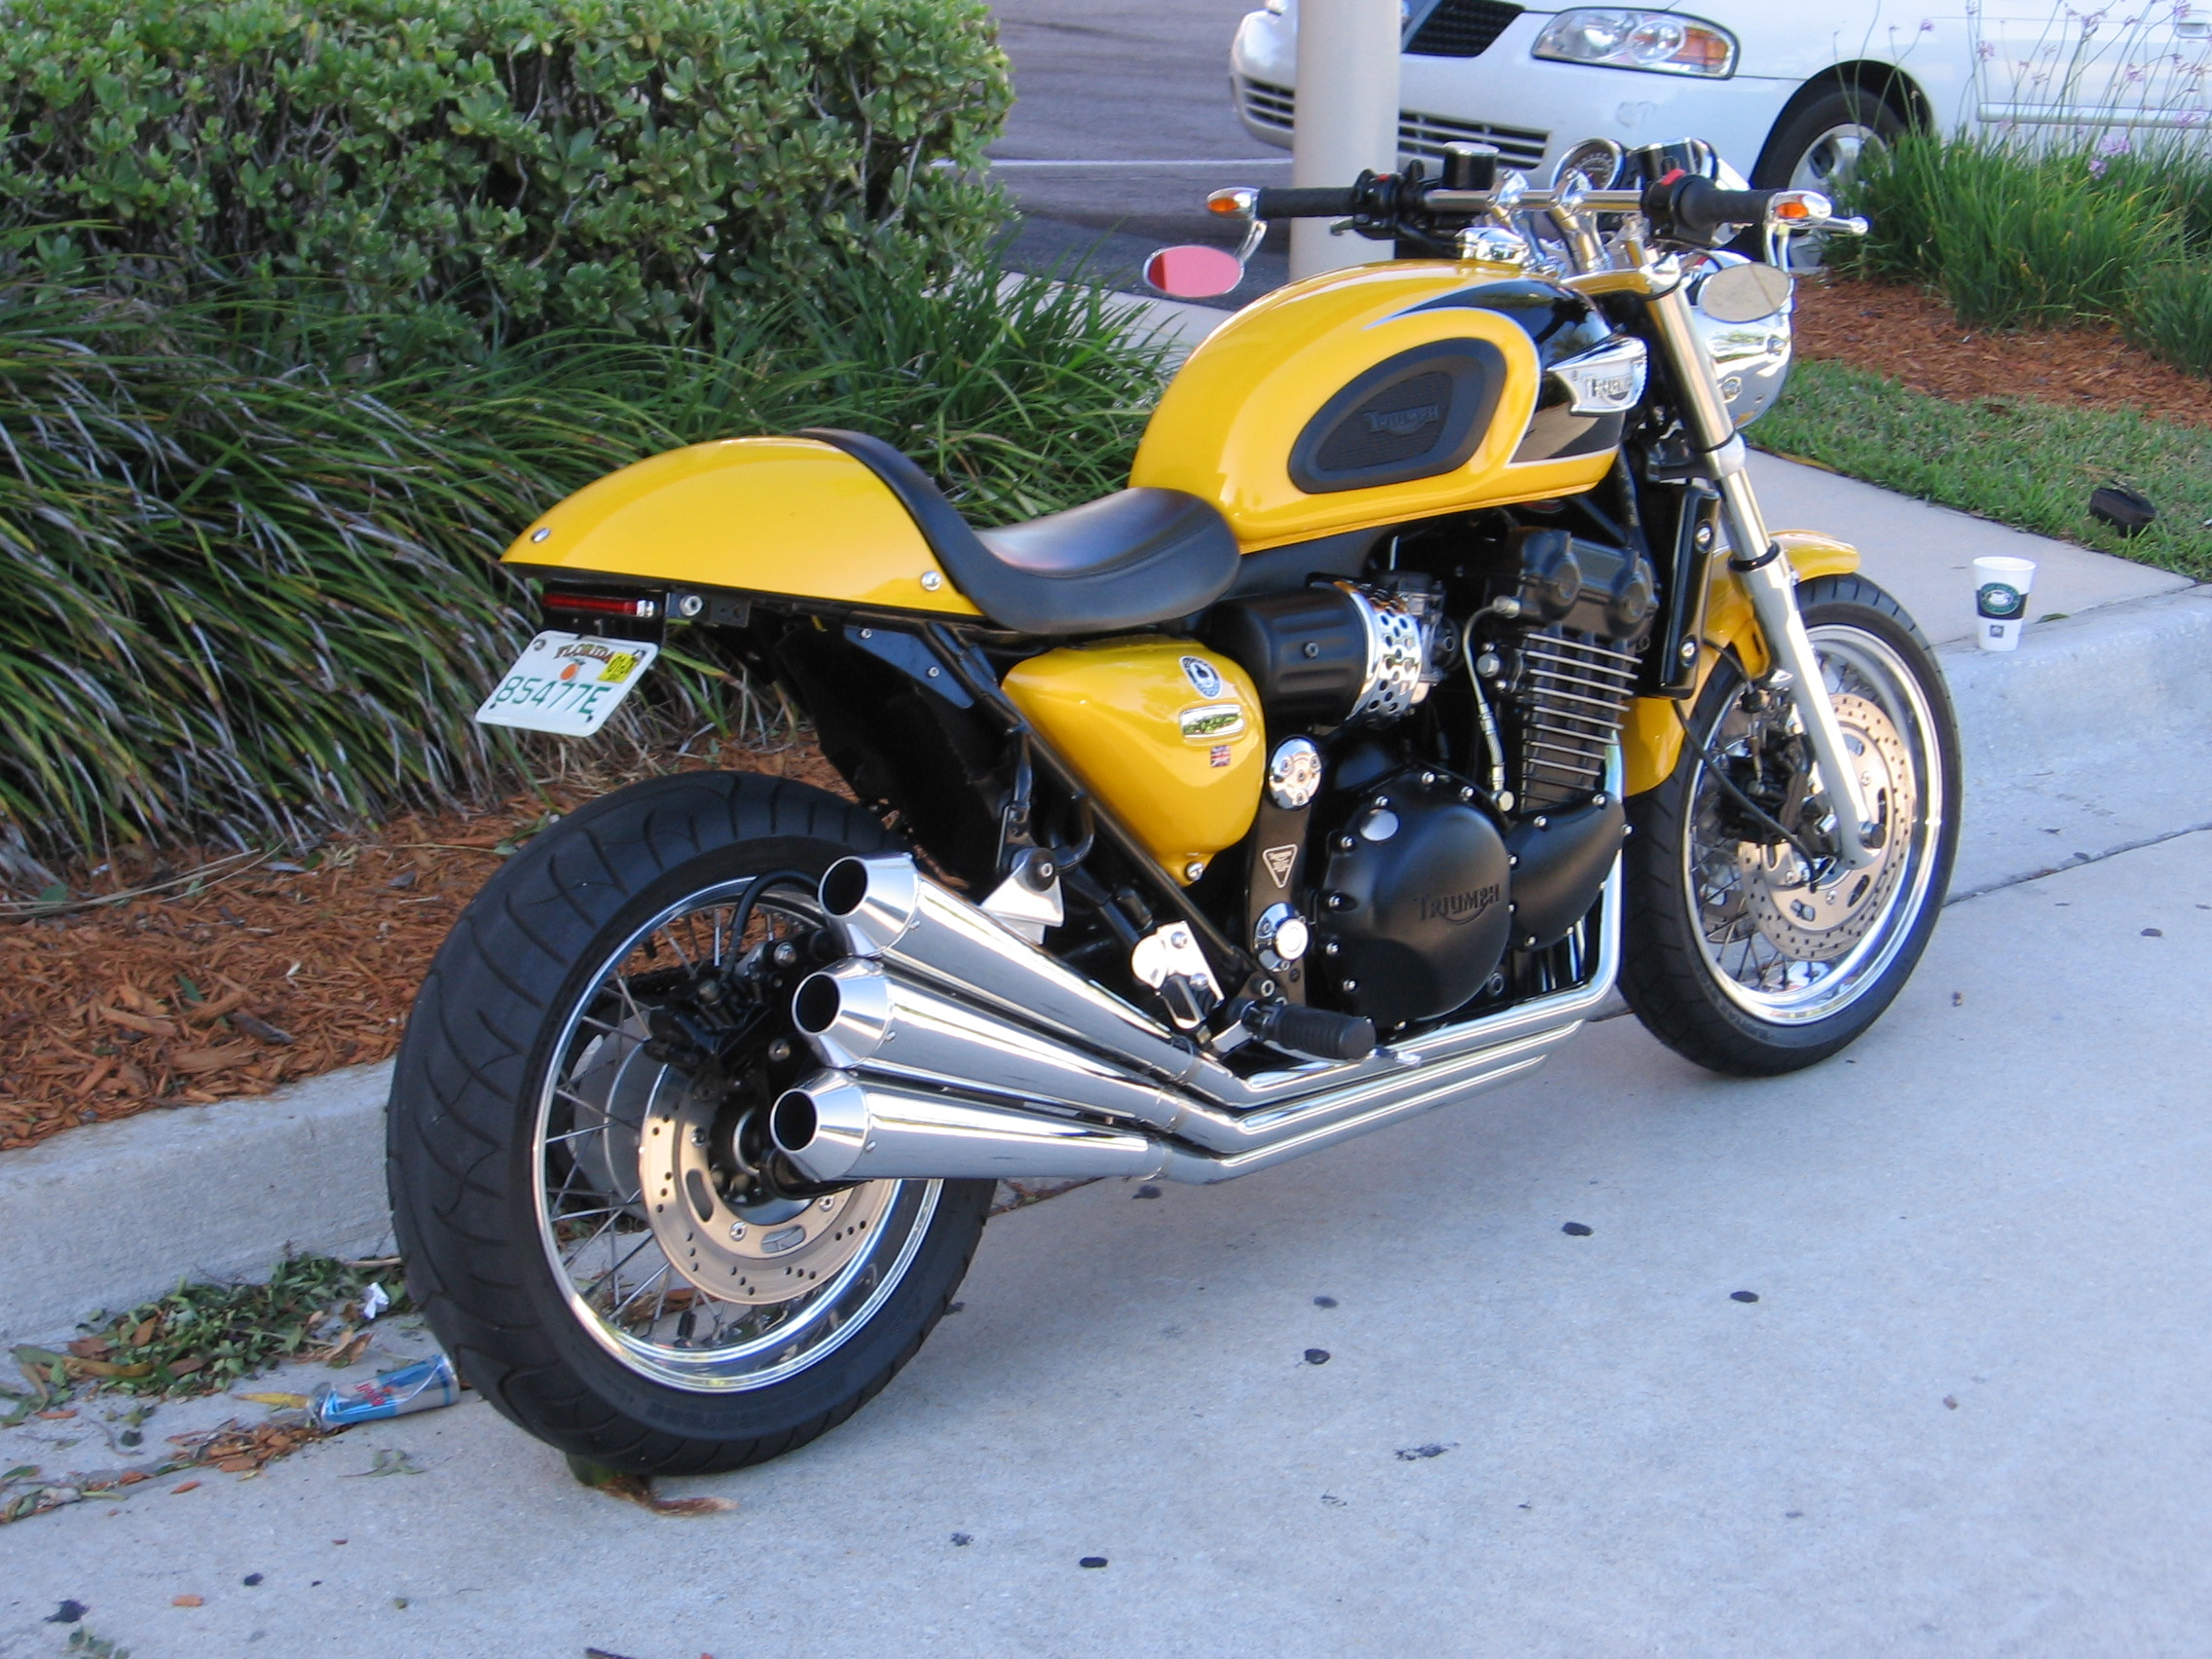 By Buddies Old Triumph Thuderbird Sport Motorcycle Photo Of